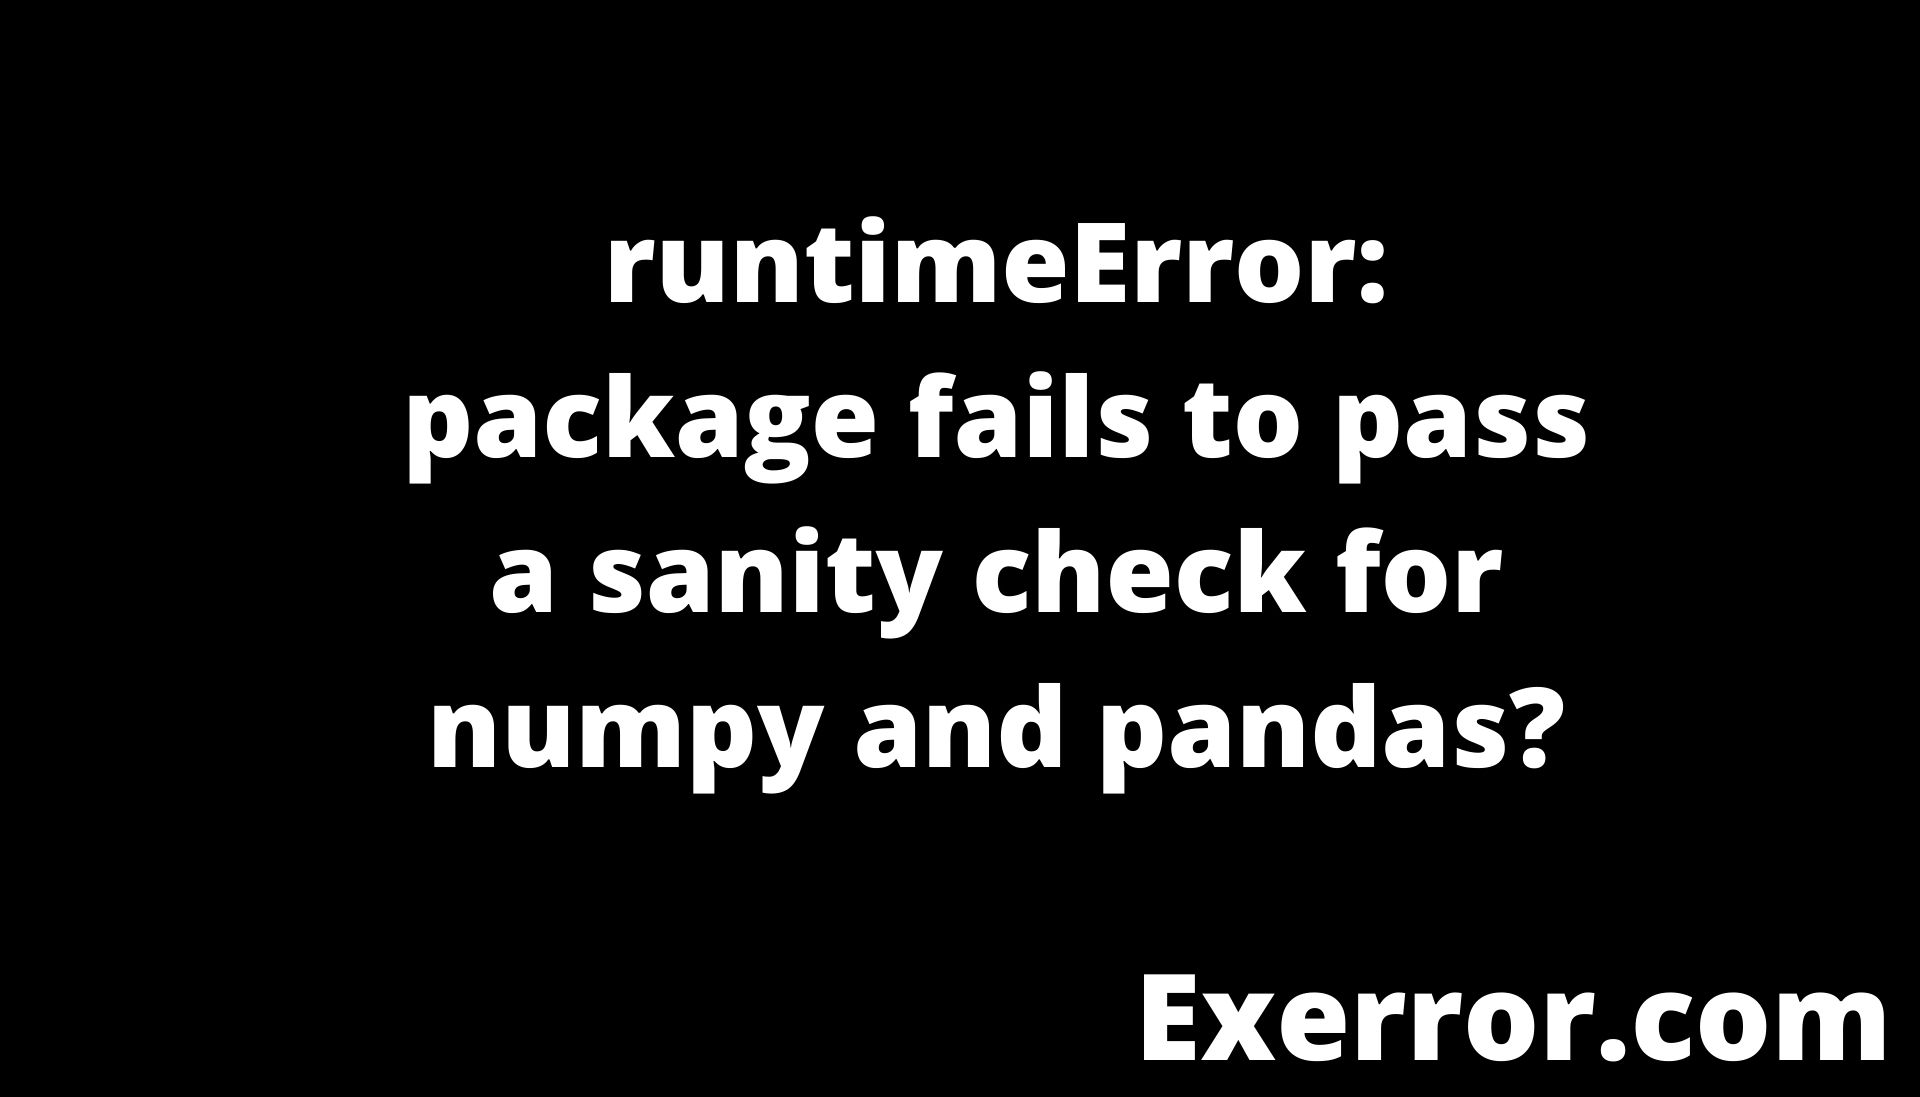 runtimeError package fails to pass a sanity check for numpy and pandas